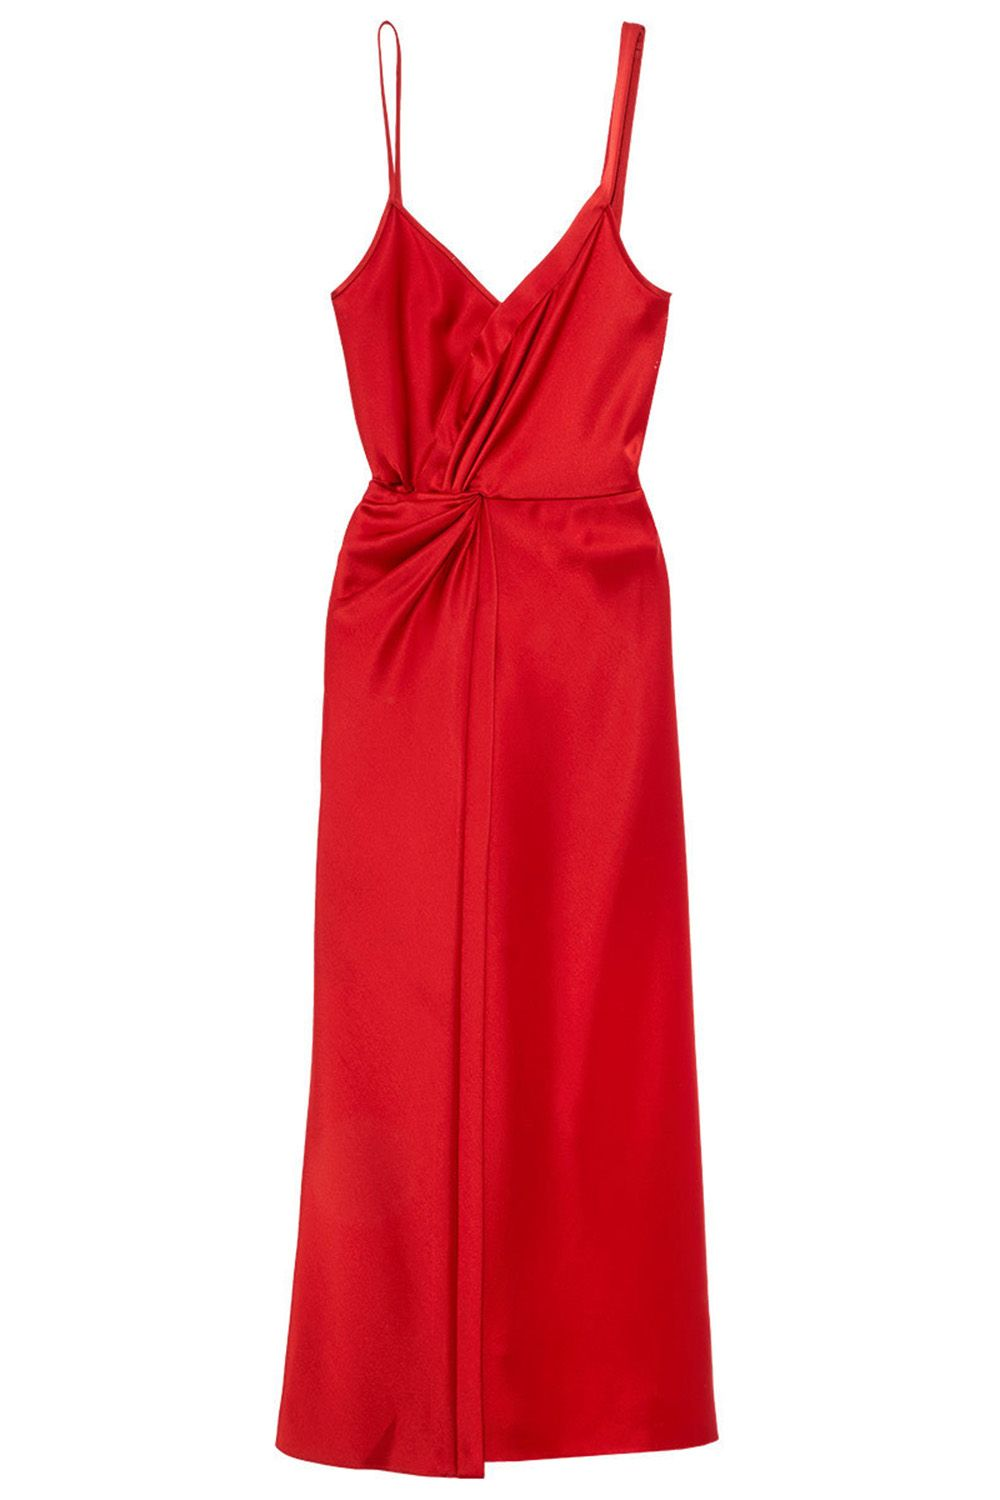 25 Best Christmas Party Dresses - What to Wear to a Holiday Cocktail ...